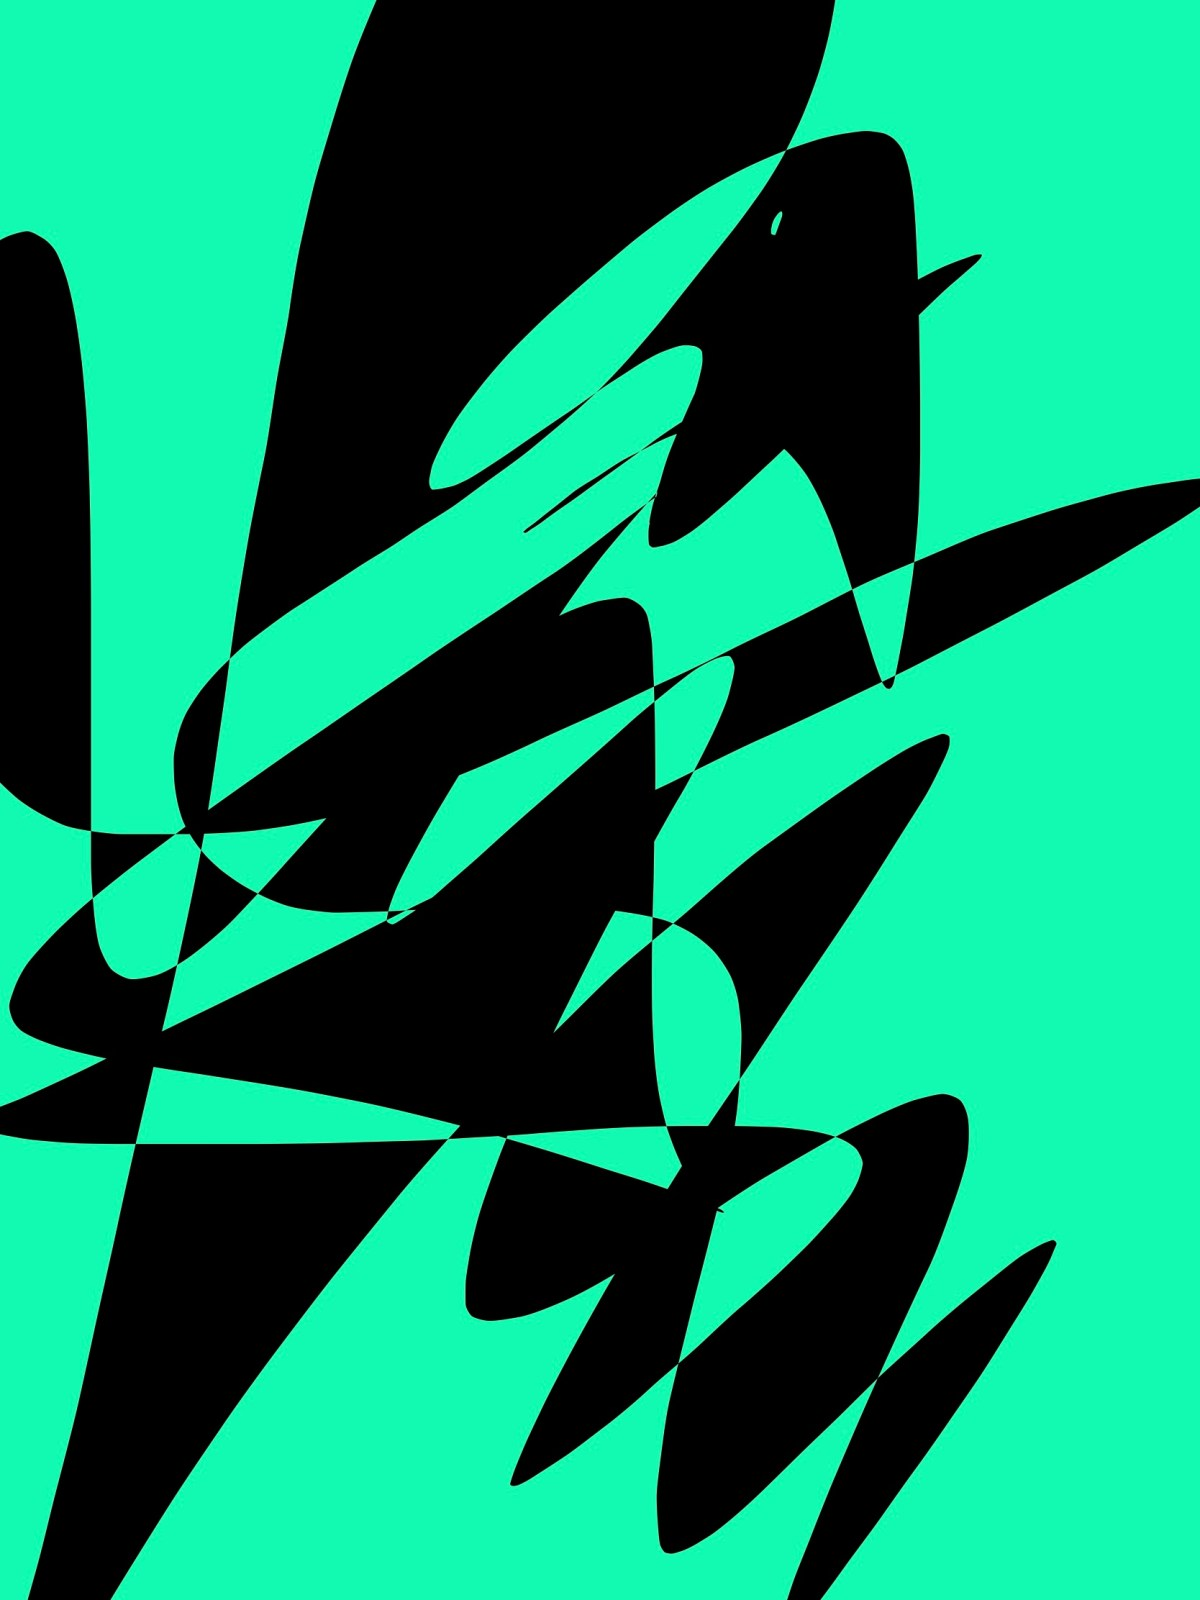 Green black abstract